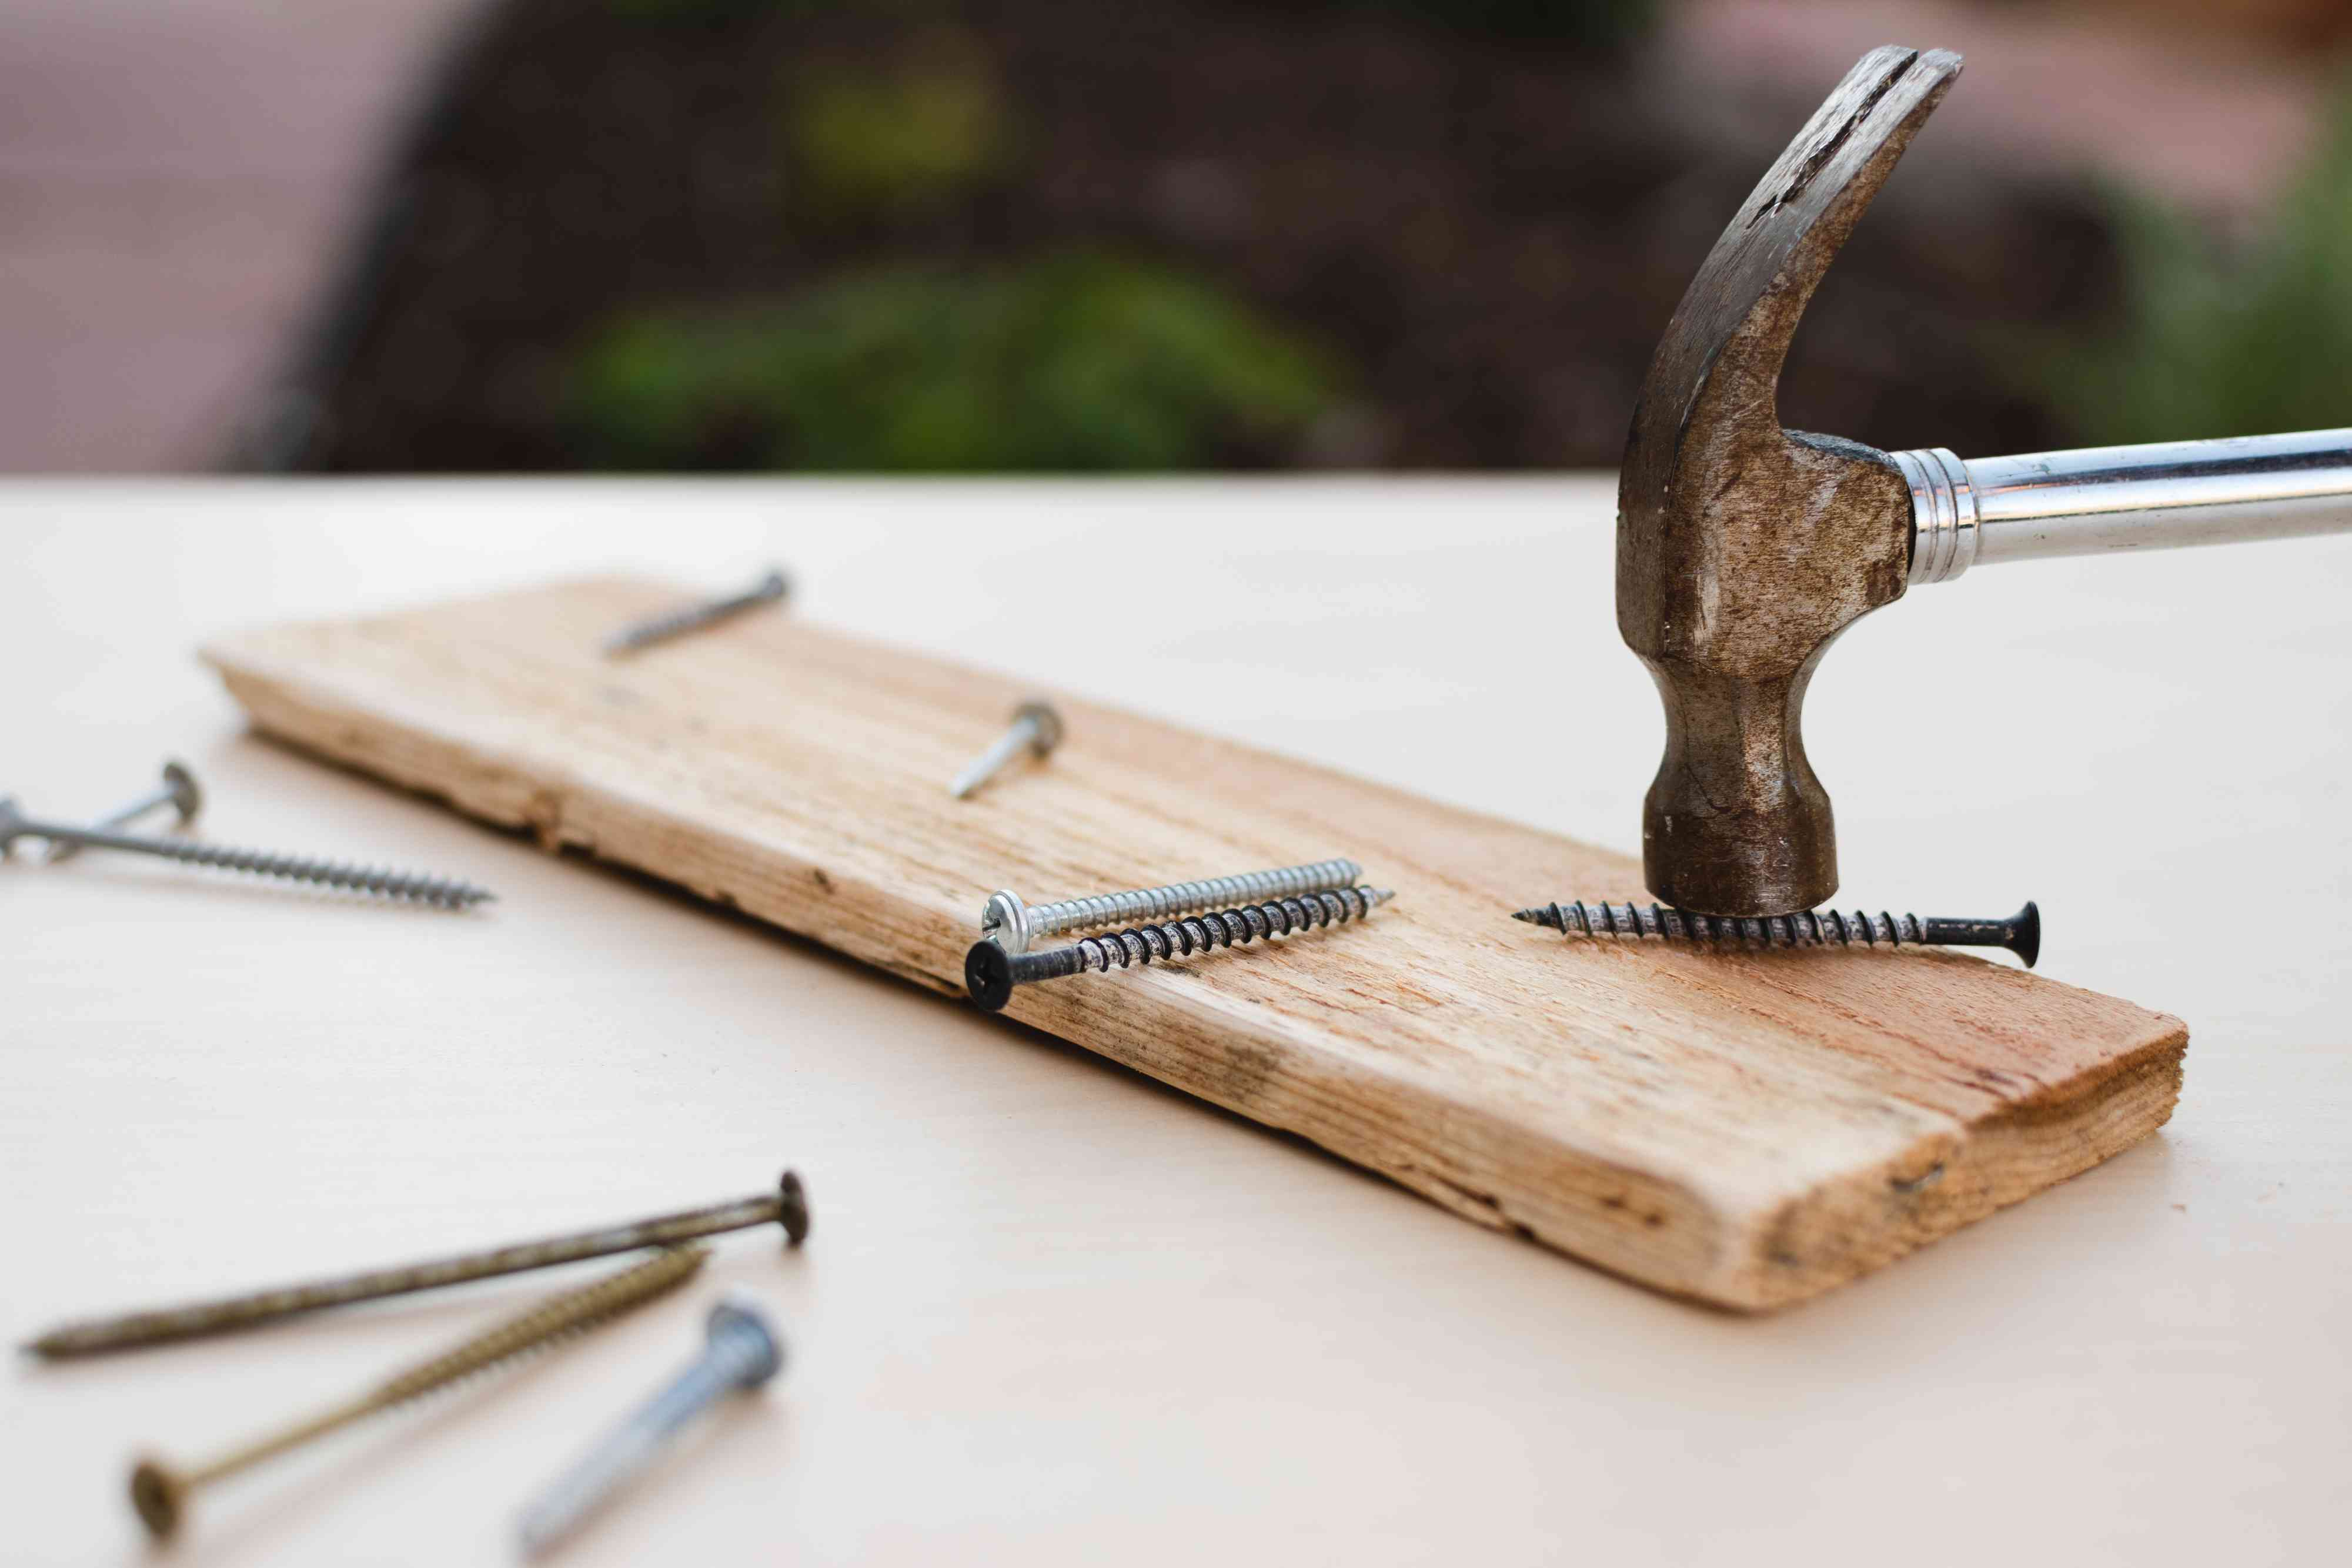 Screw tapped with hammer on wood plank to make insect activity look